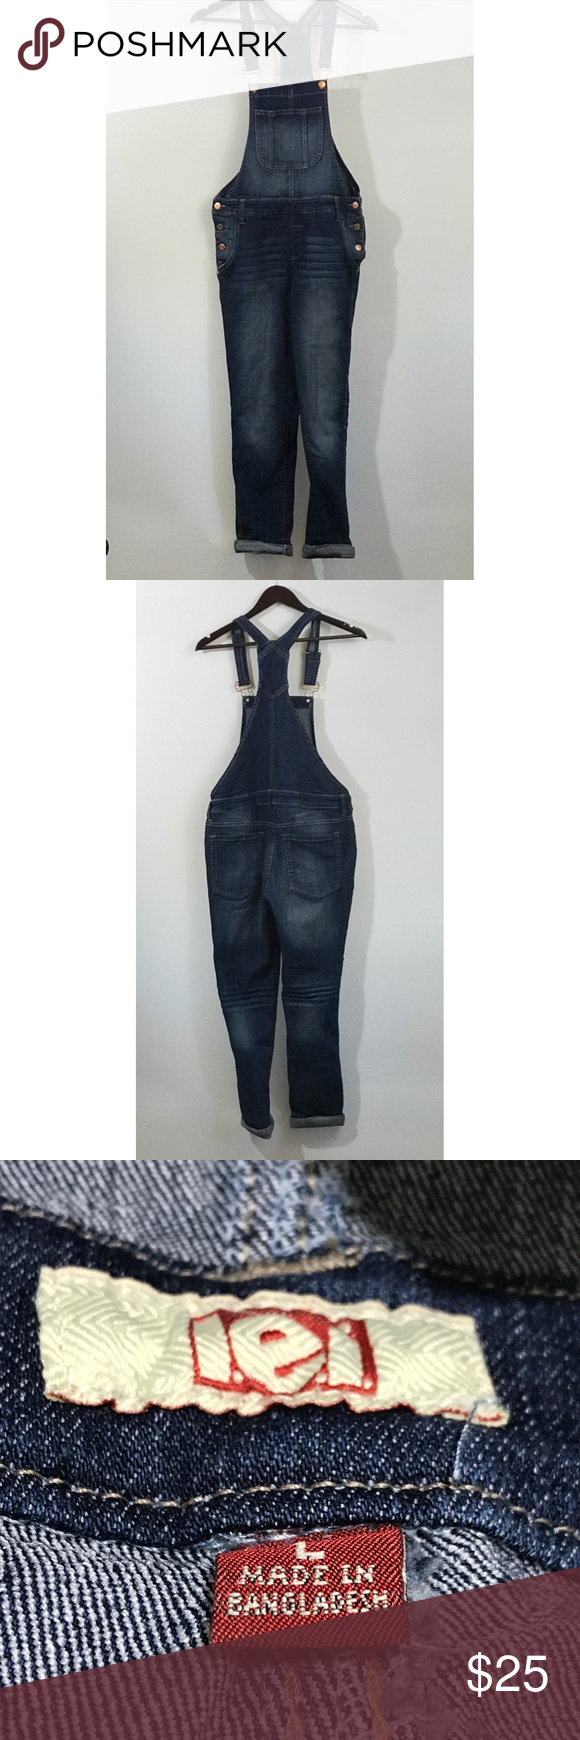 """LEI Kohl's Junior Large 9 11  Medium Wash Overall LEI Kohl's Junior Womens Sz Large L 9 11  Medium Wash Overalls Ankle Denim   Features: - rolled hem - 5 pocket - belt loops - factory distressing and whisking  Approximate measurements: waist: 30.5"""" inseam: 26"""" (rolled)  Condition: new with tags kohls Jeans Overalls"""